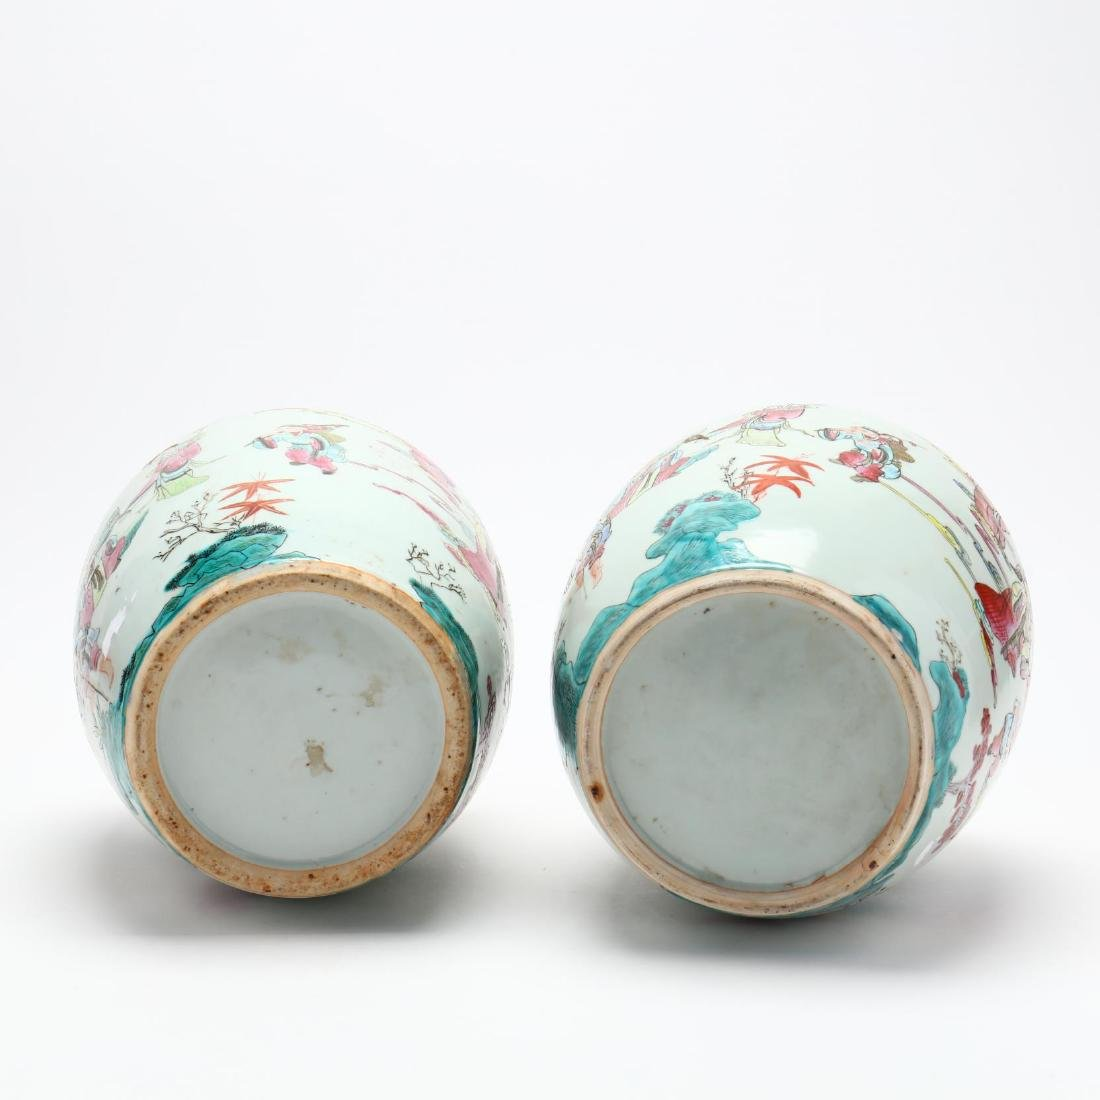 Pair of Chinese Export Porcelain Lidded Jars - 3